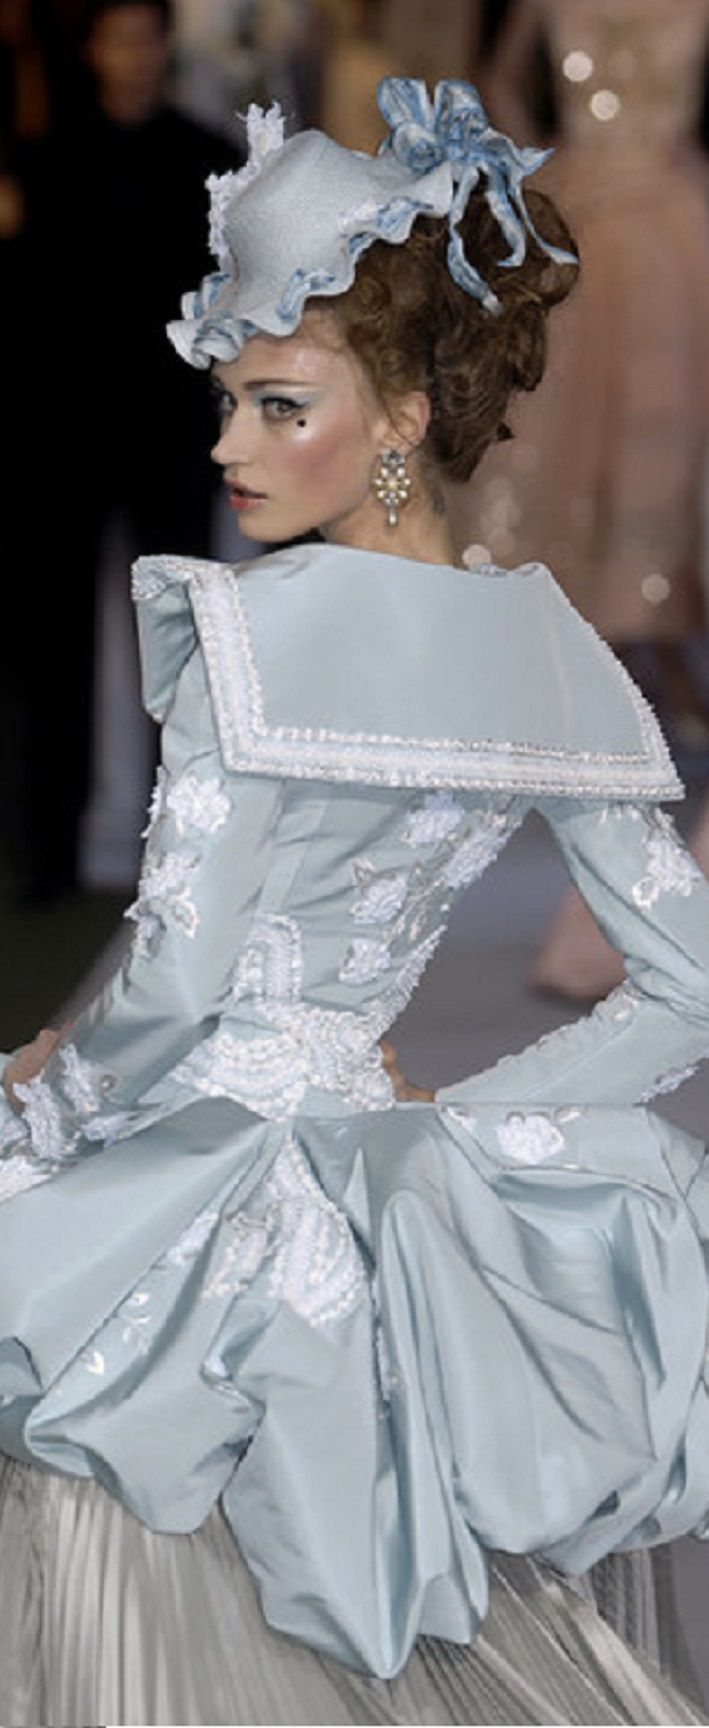 63 best A\'s closet images on Pinterest | Historical clothing, 18th ...